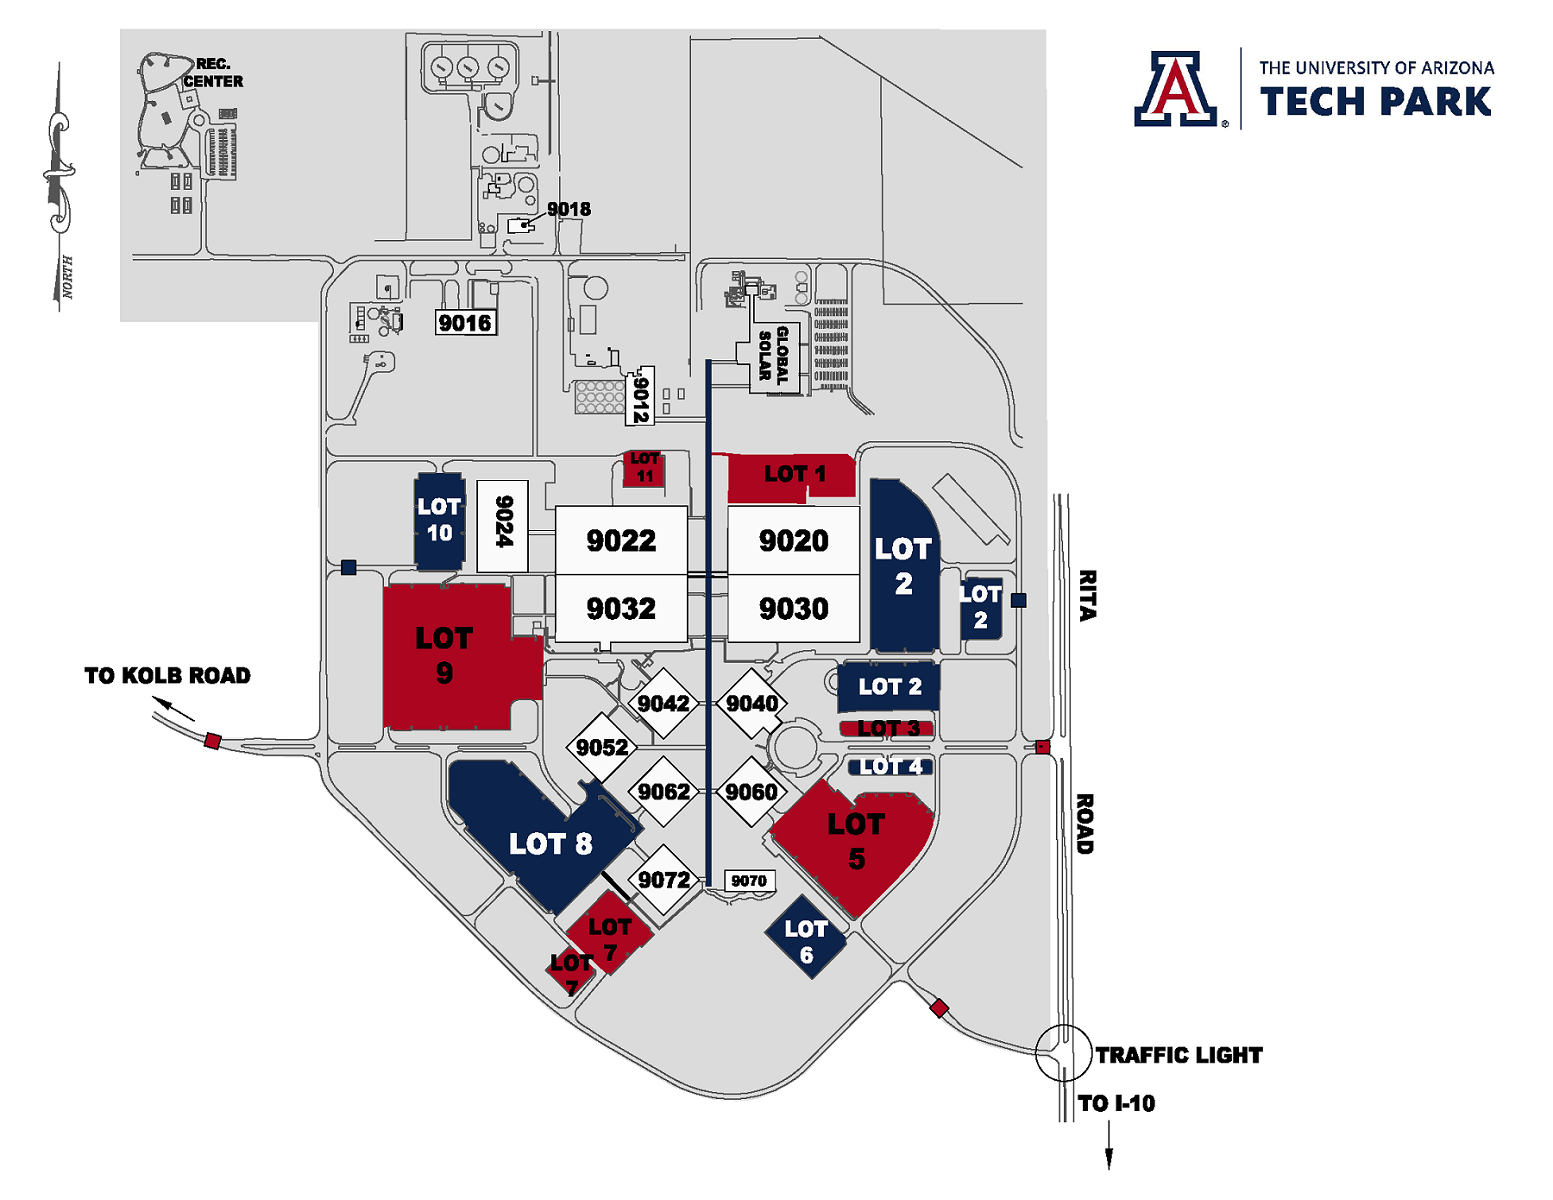 photo about University of Arizona Campus Map Printable referred to as Maps Tech Parks Arizona